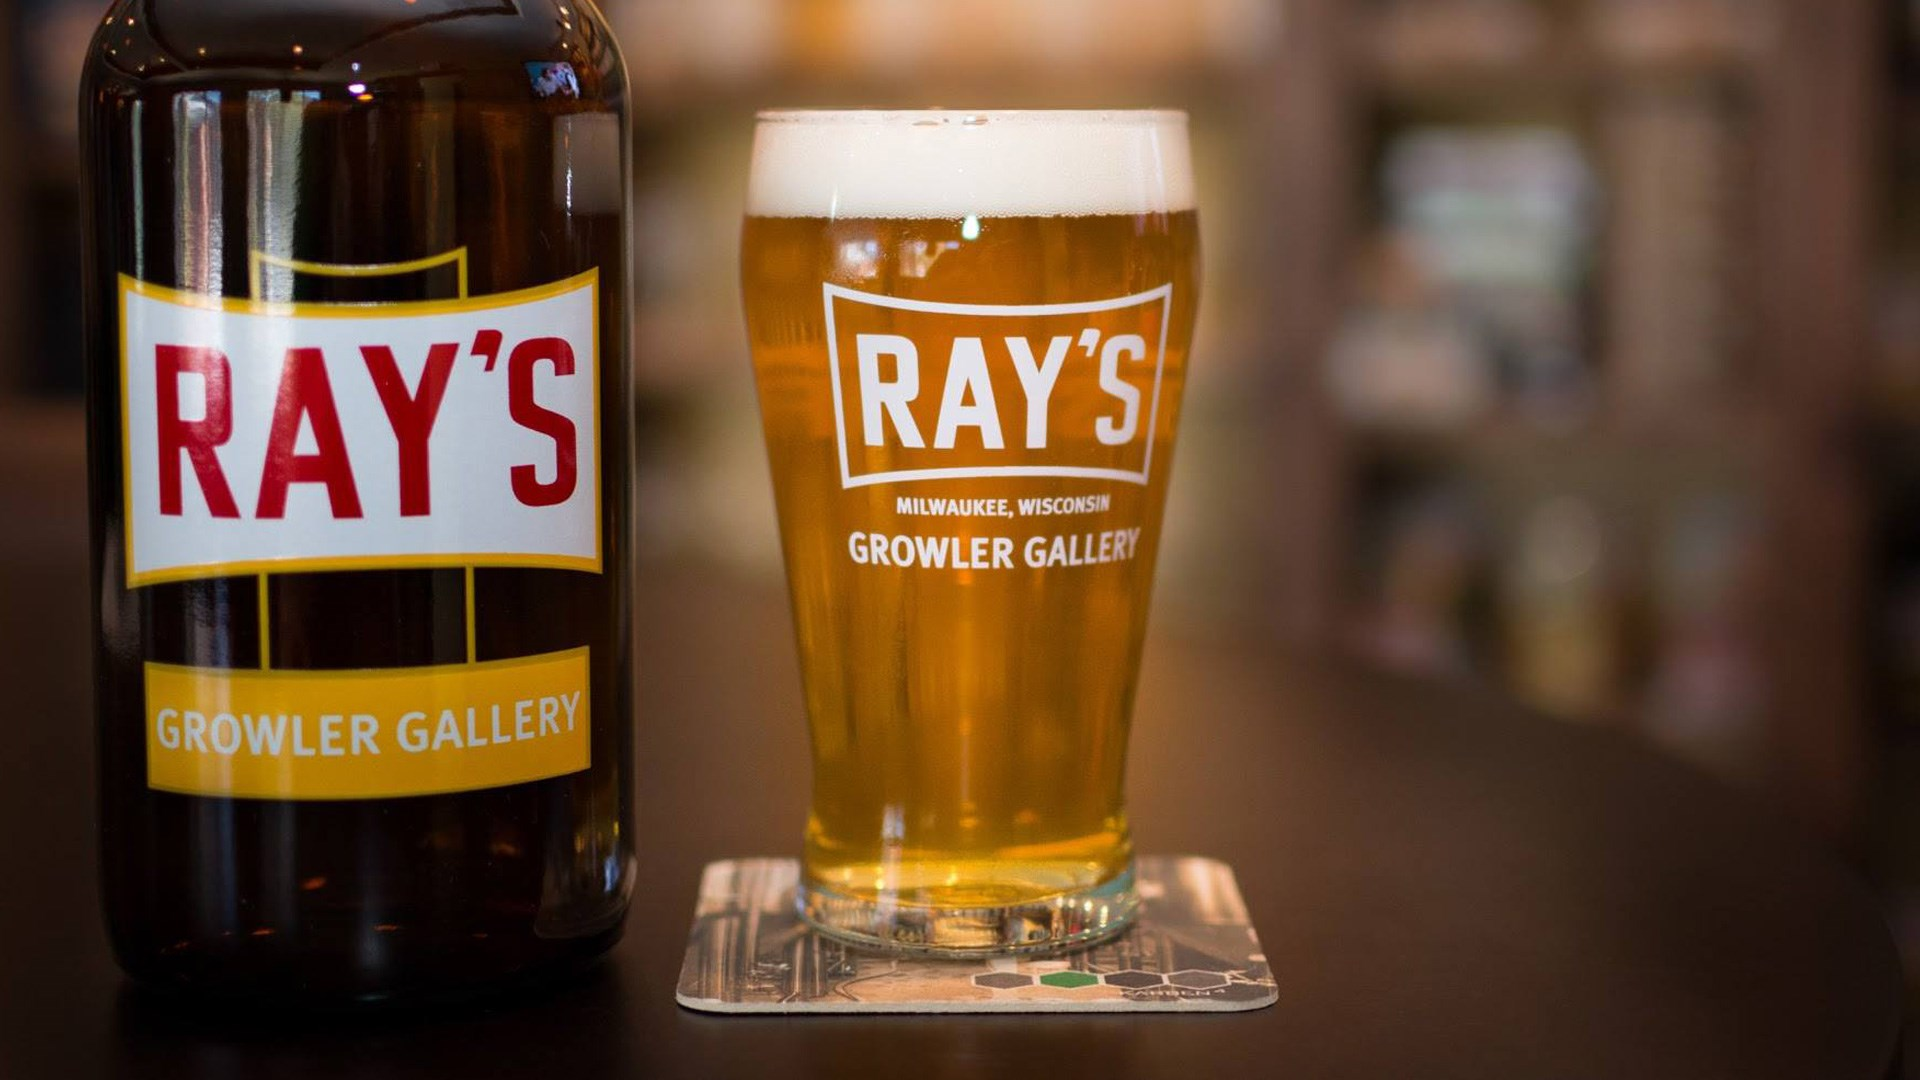 Ray's Growler Gallery